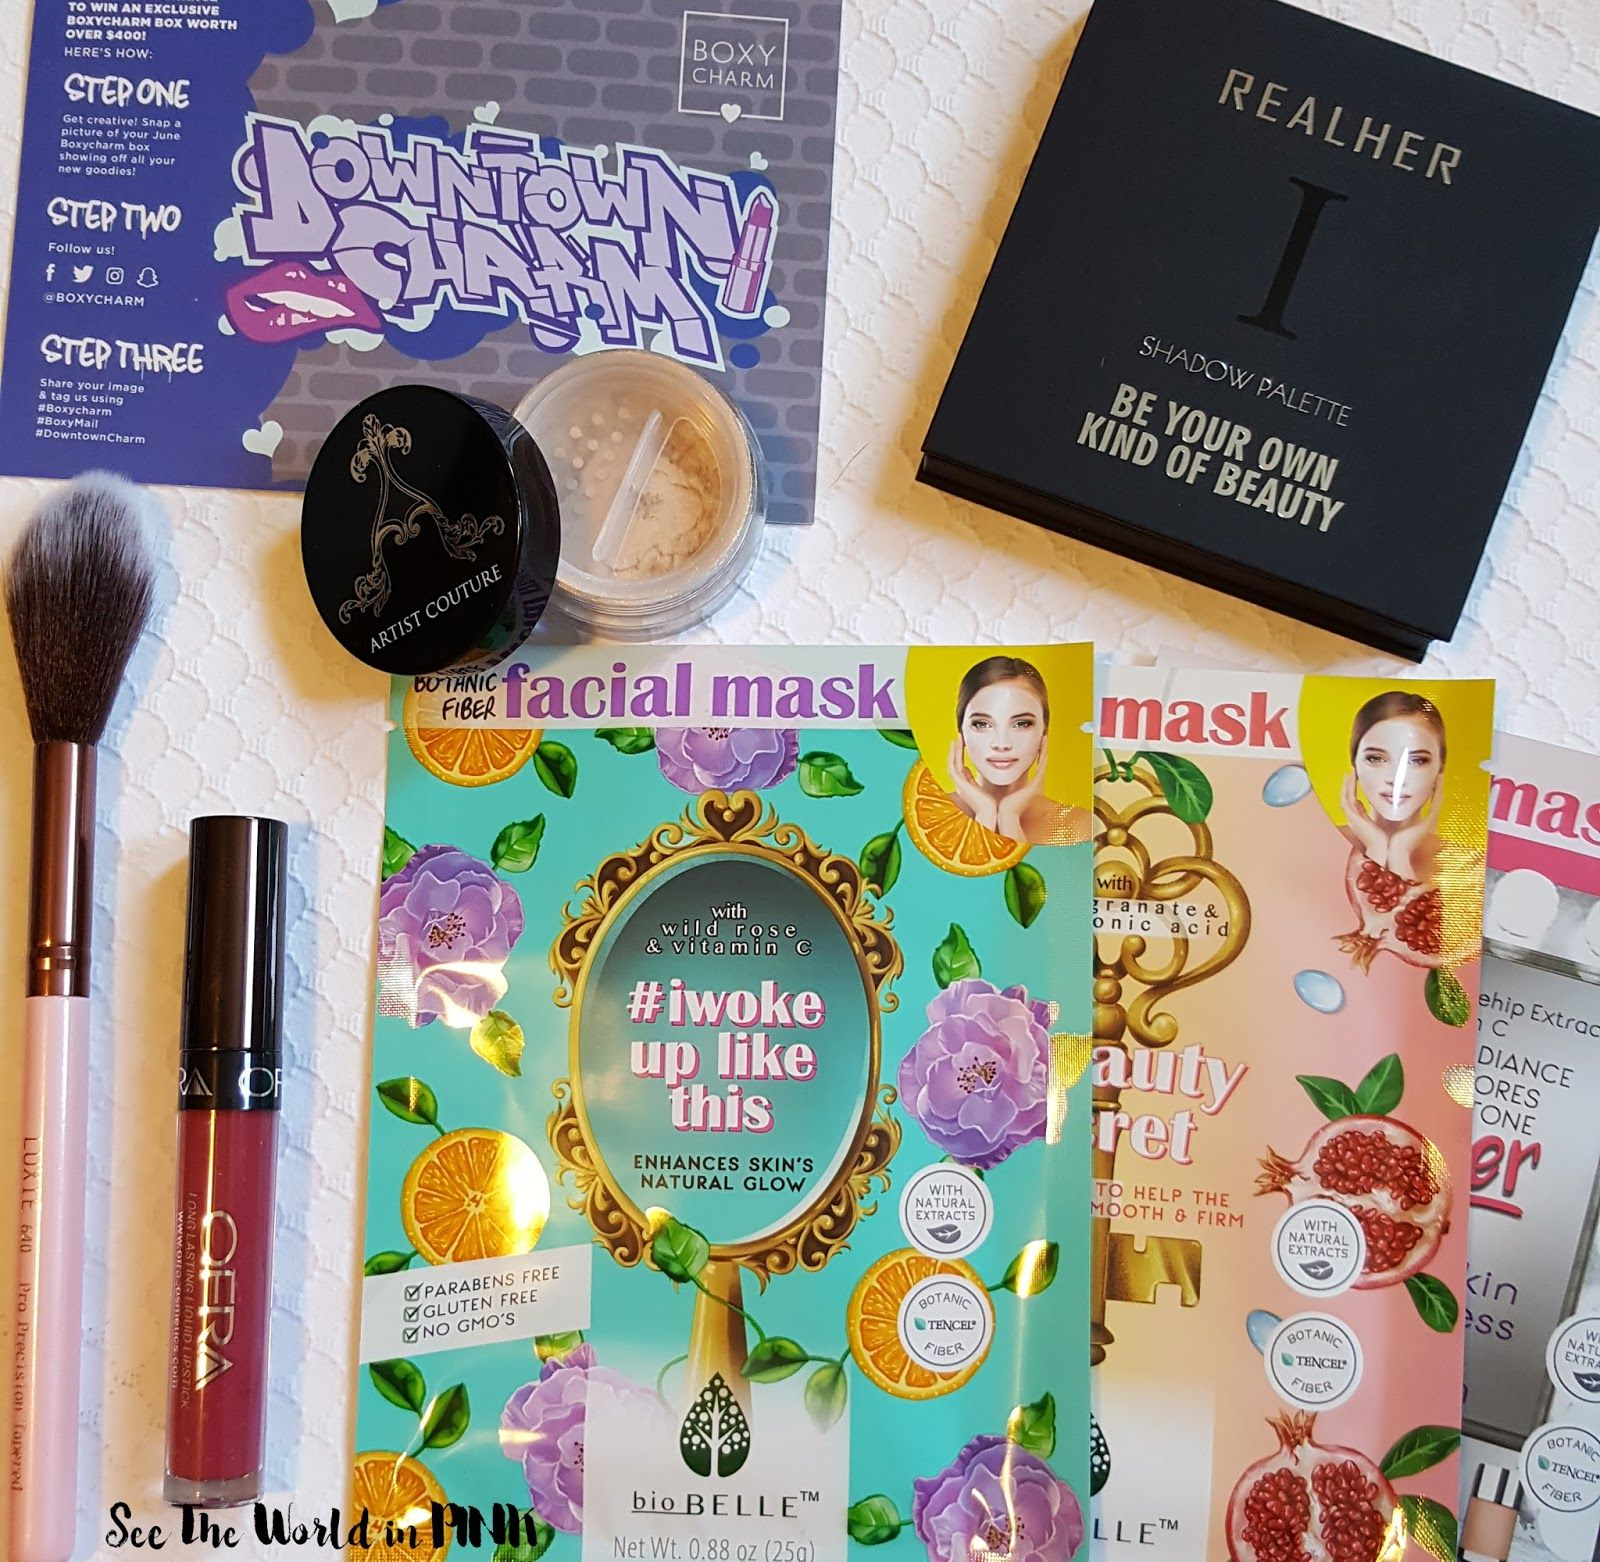 June 2017 Boxycharm Unboxing and Review! Boxycharm